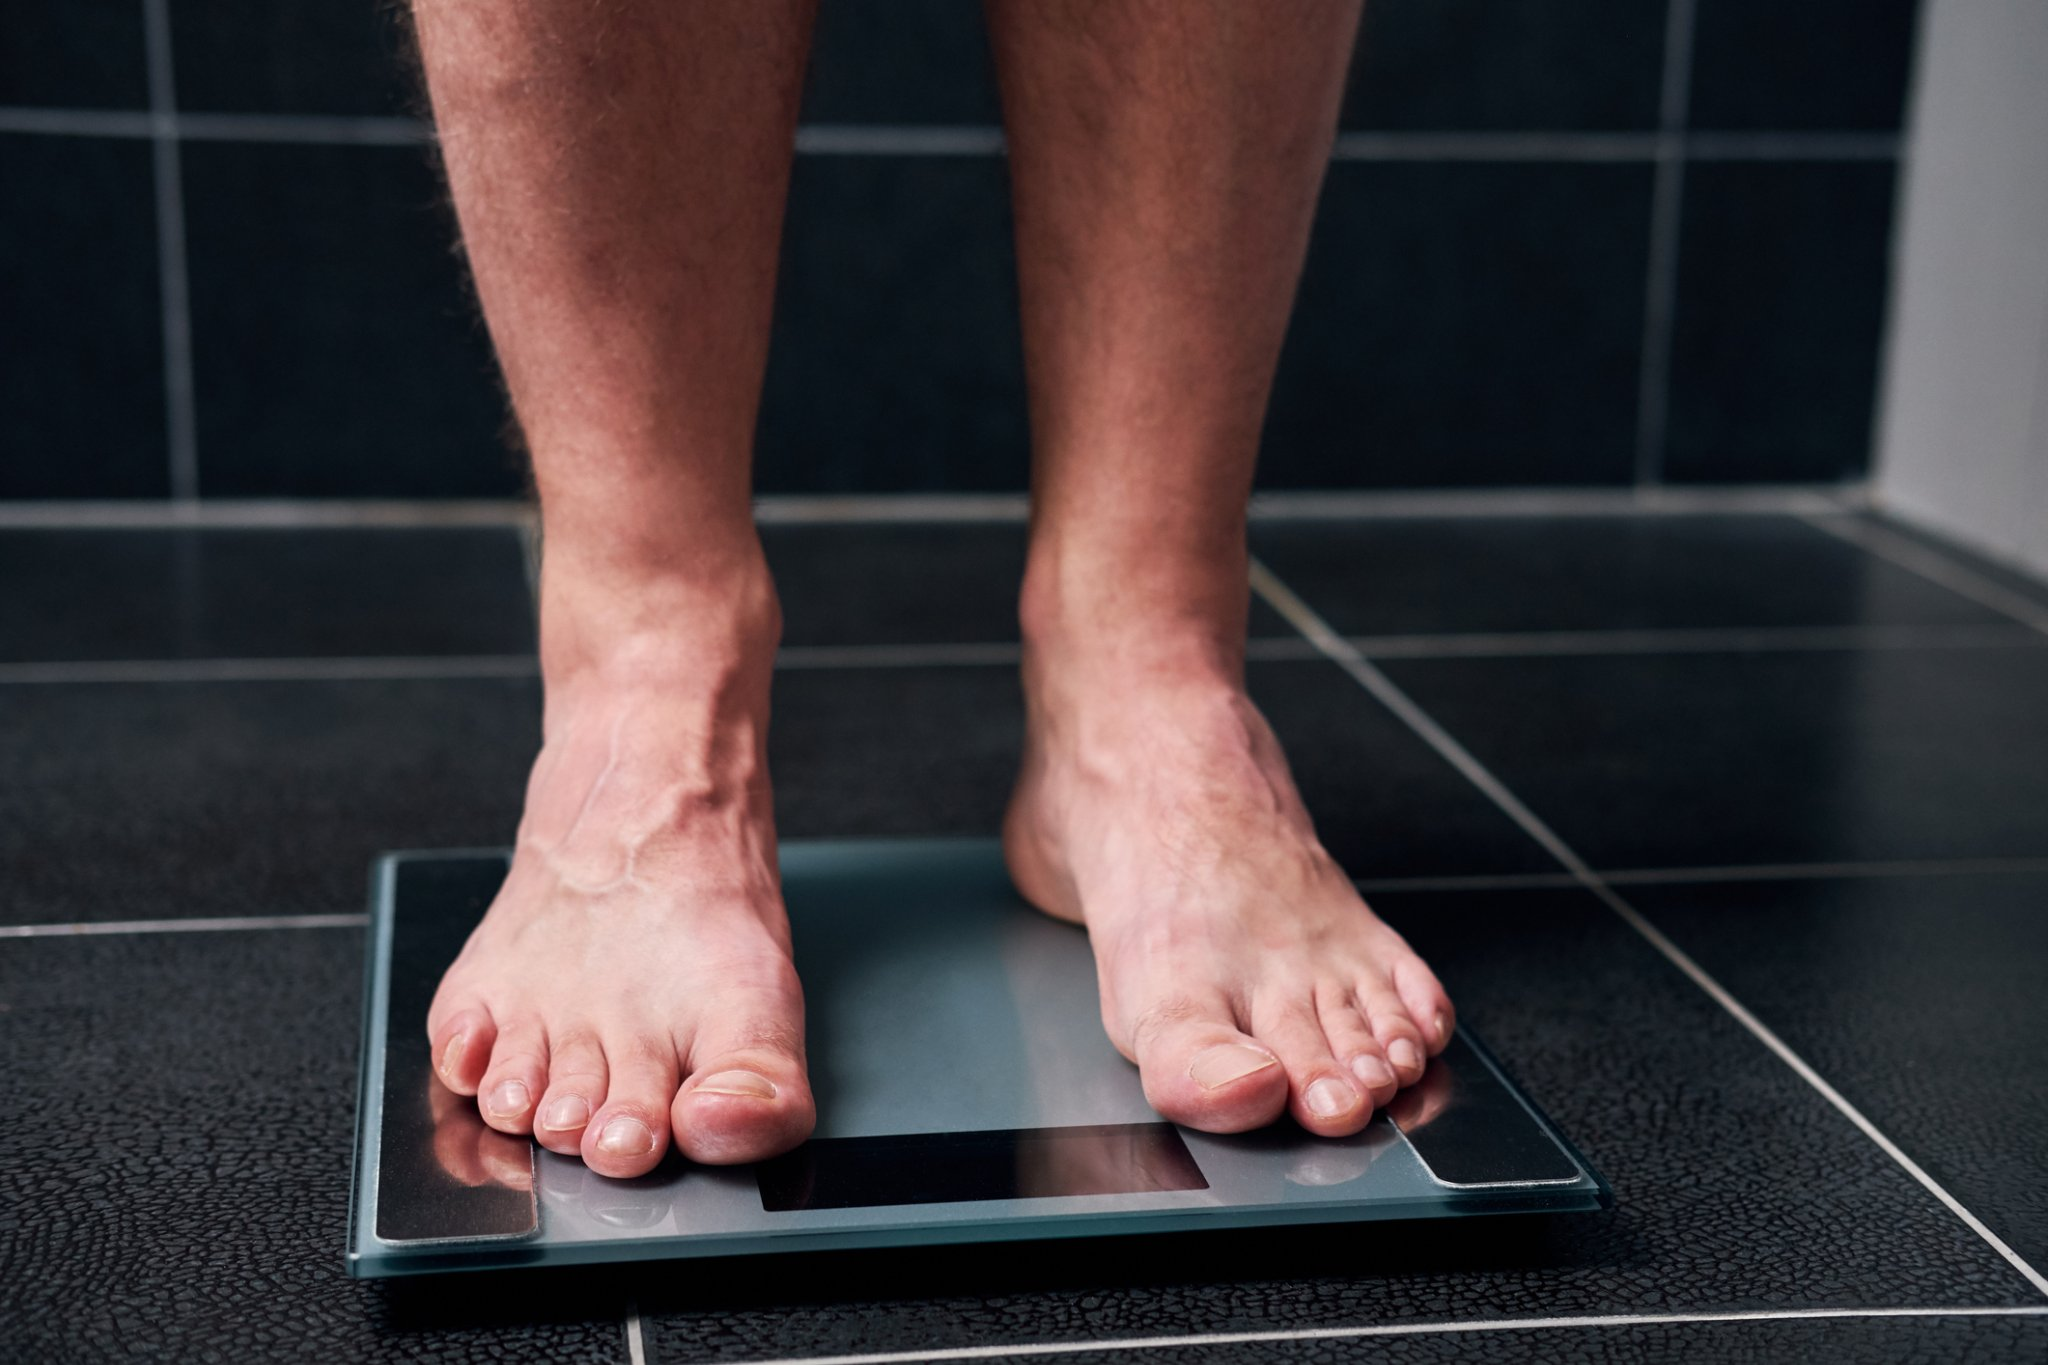 The average person has gained an absurd amount of weight during the pandemic